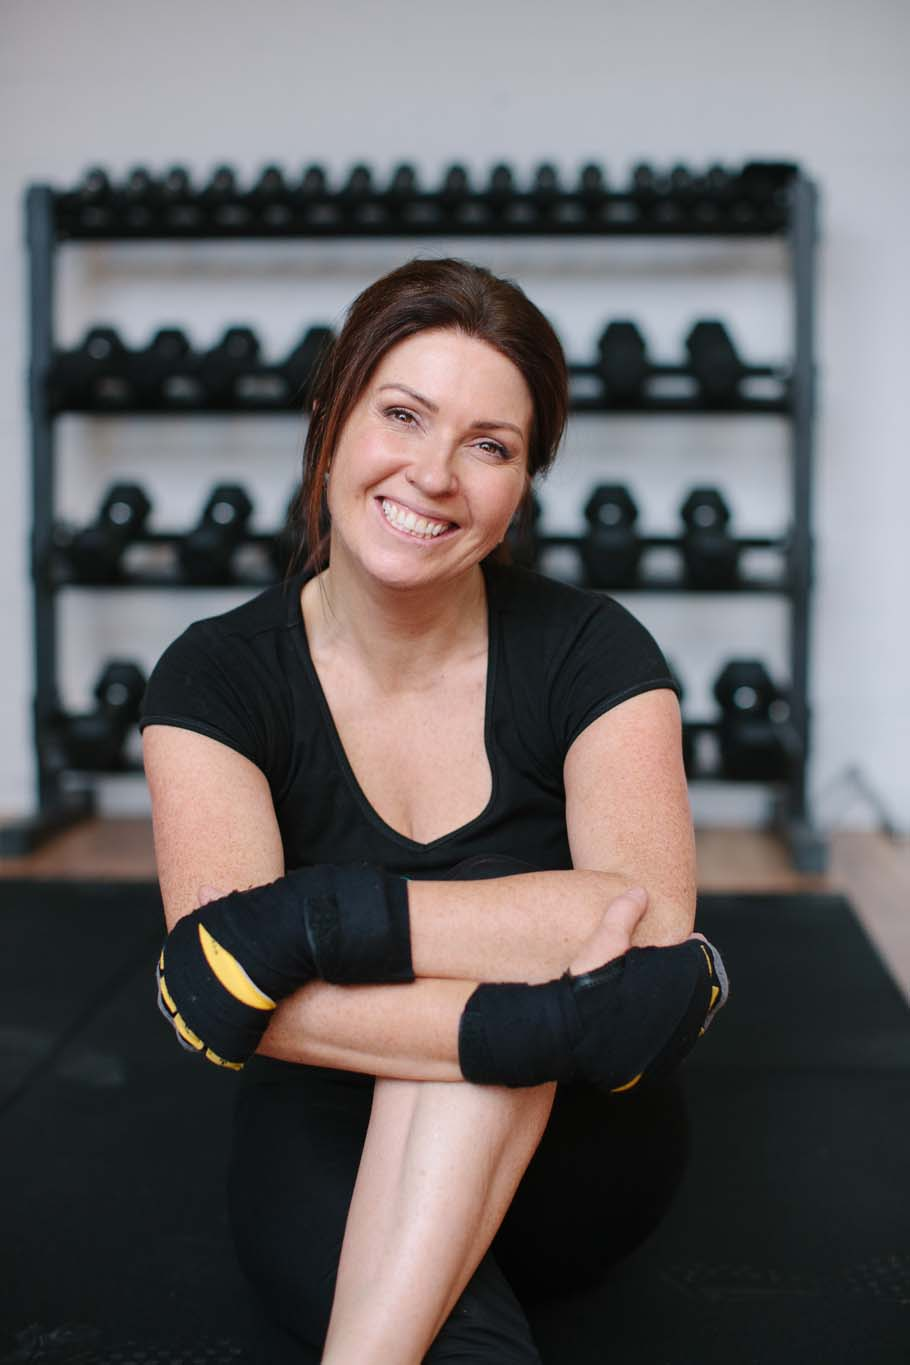 Corporate photo of woman with dumbbell backing wall